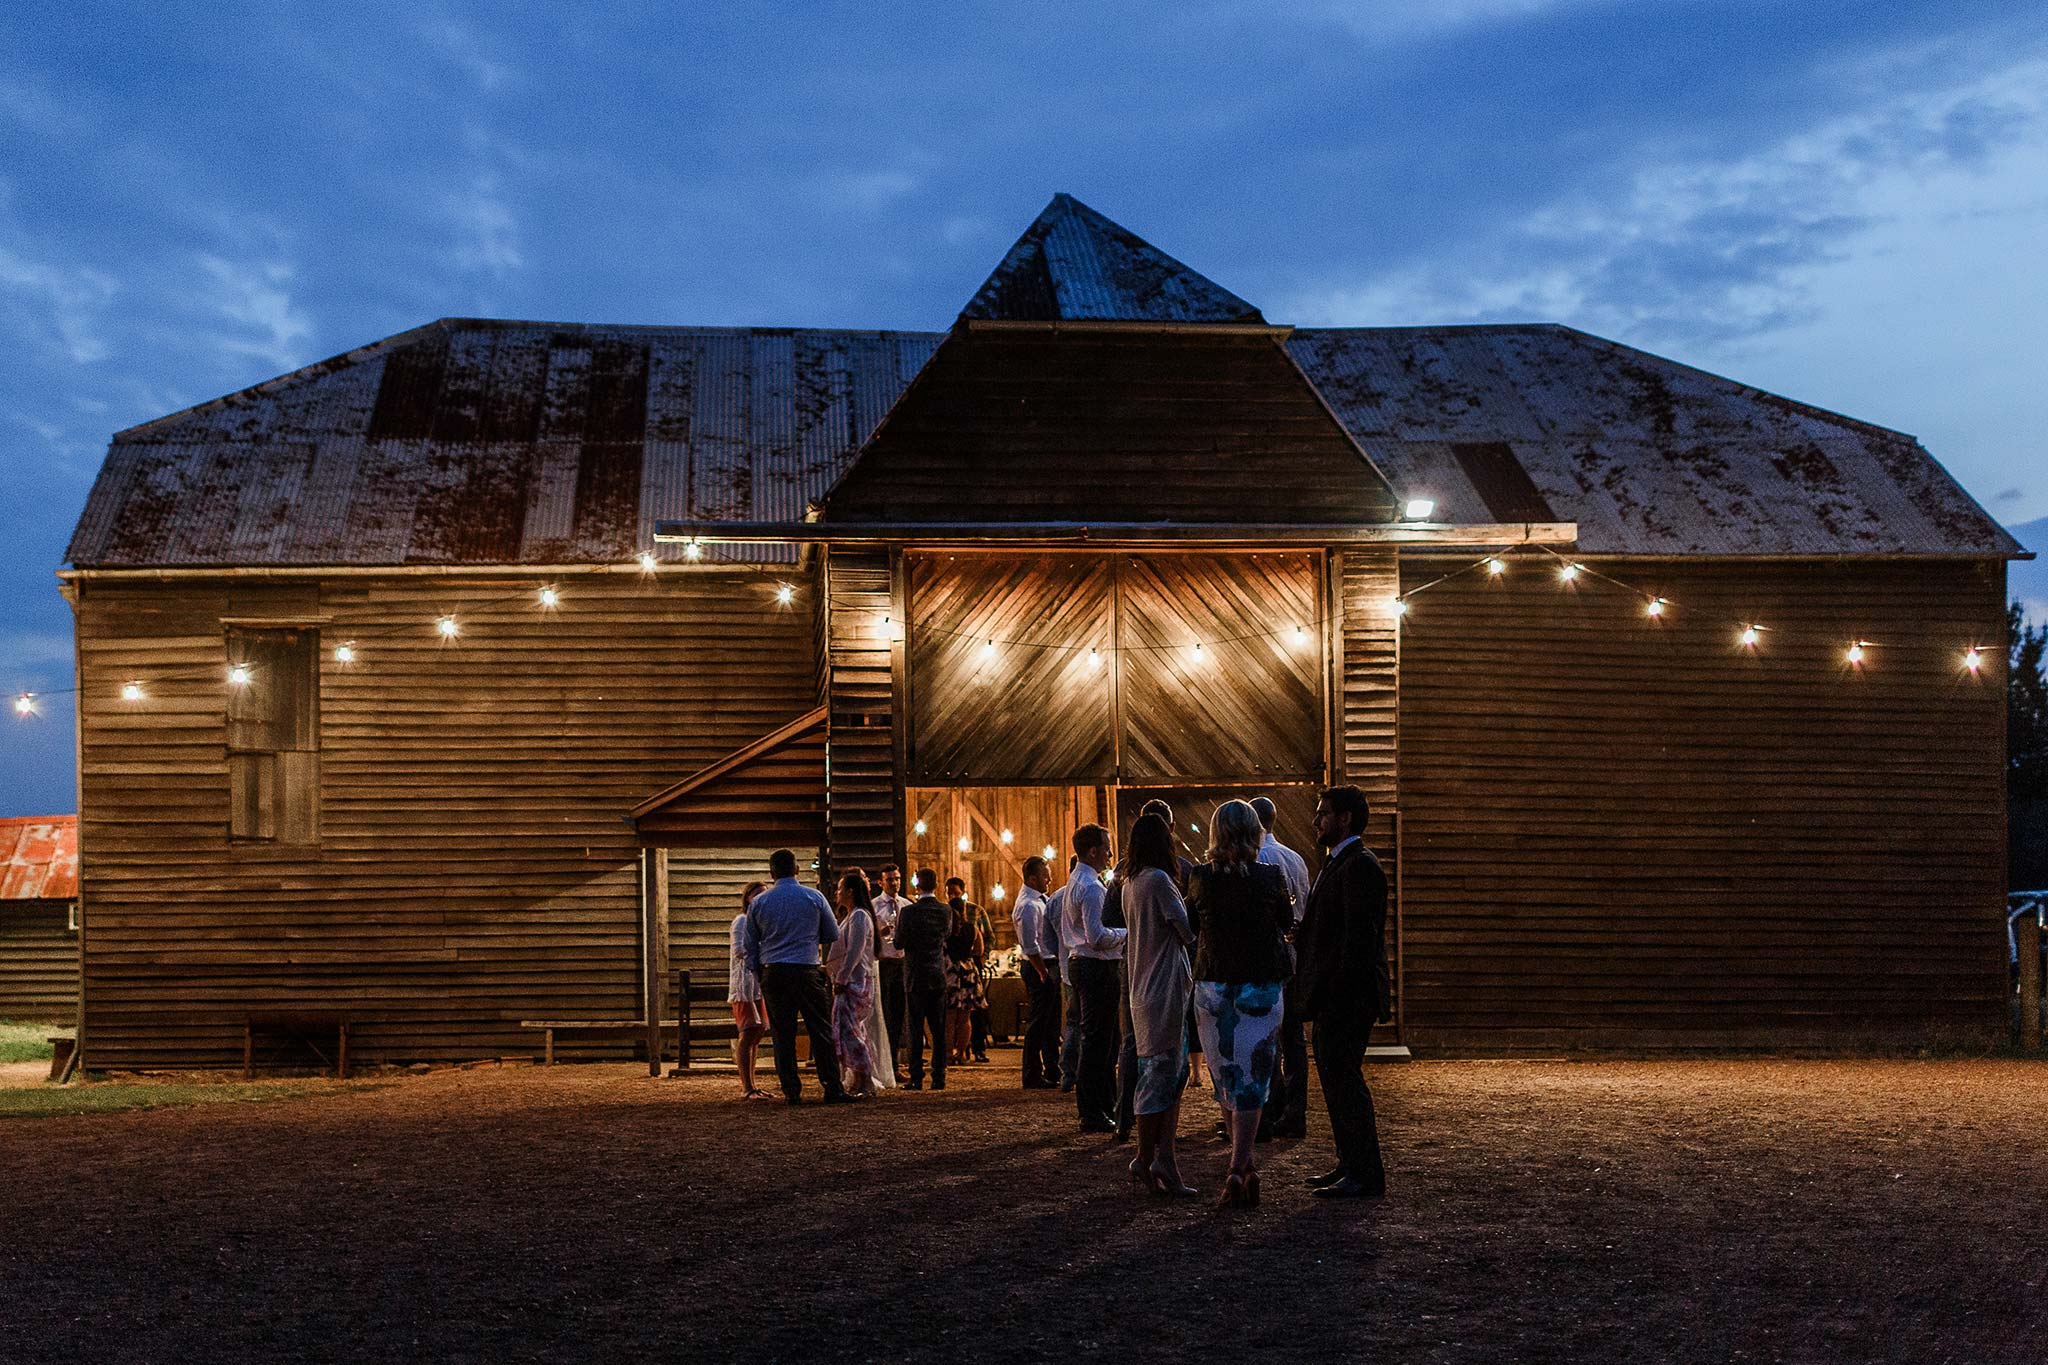 Launceston-Brickendon-barn-Wedding-Photographer-reception-night-view